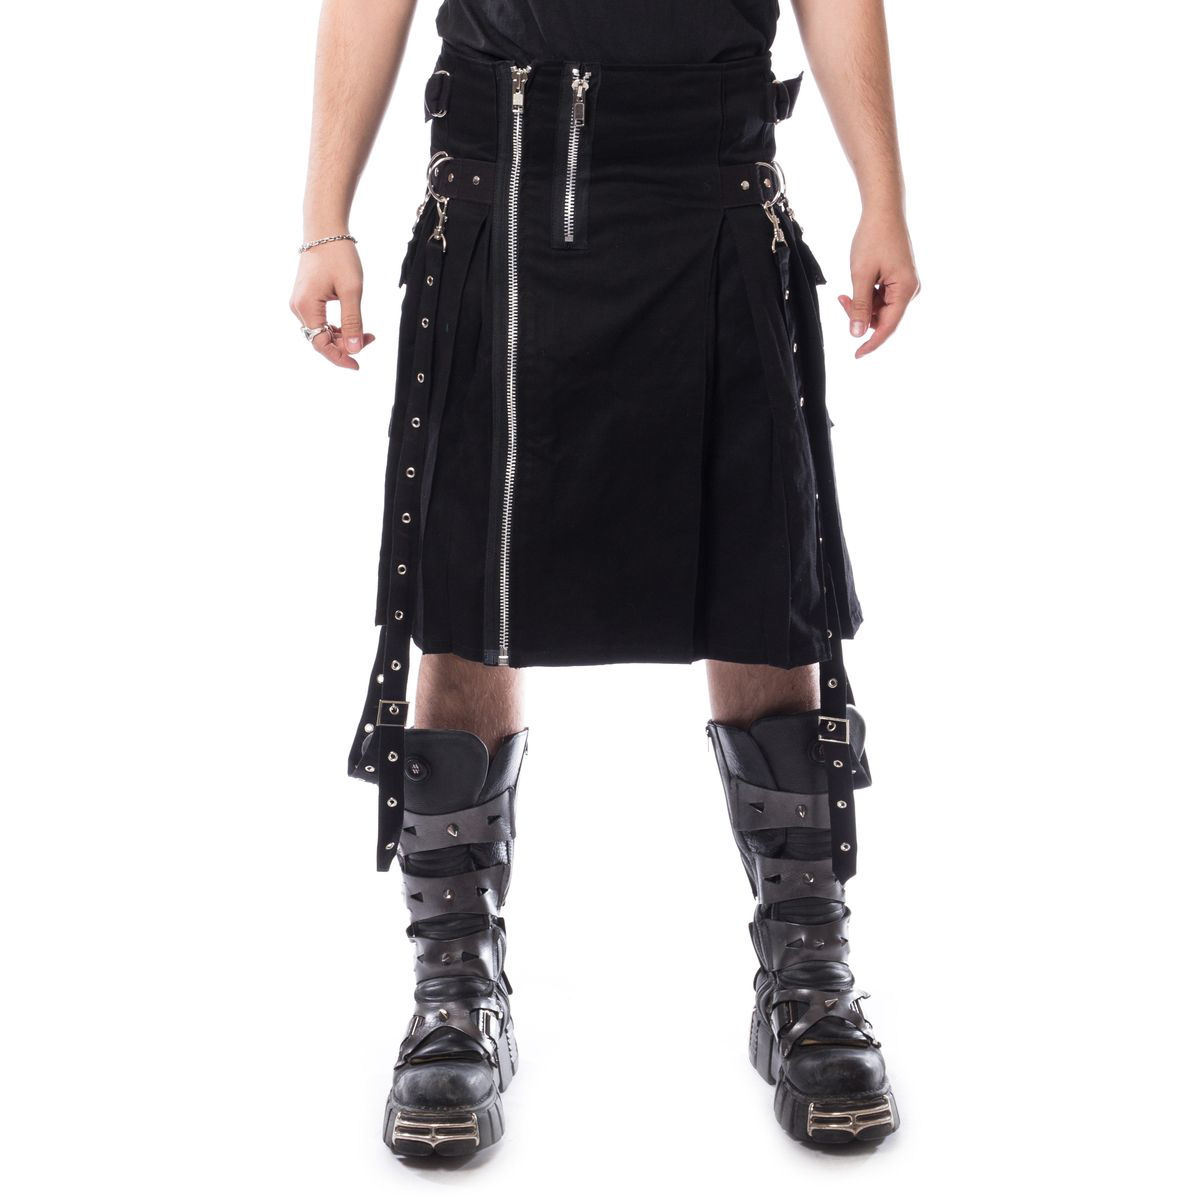 kilt CHEMICAL BLACK CARL S